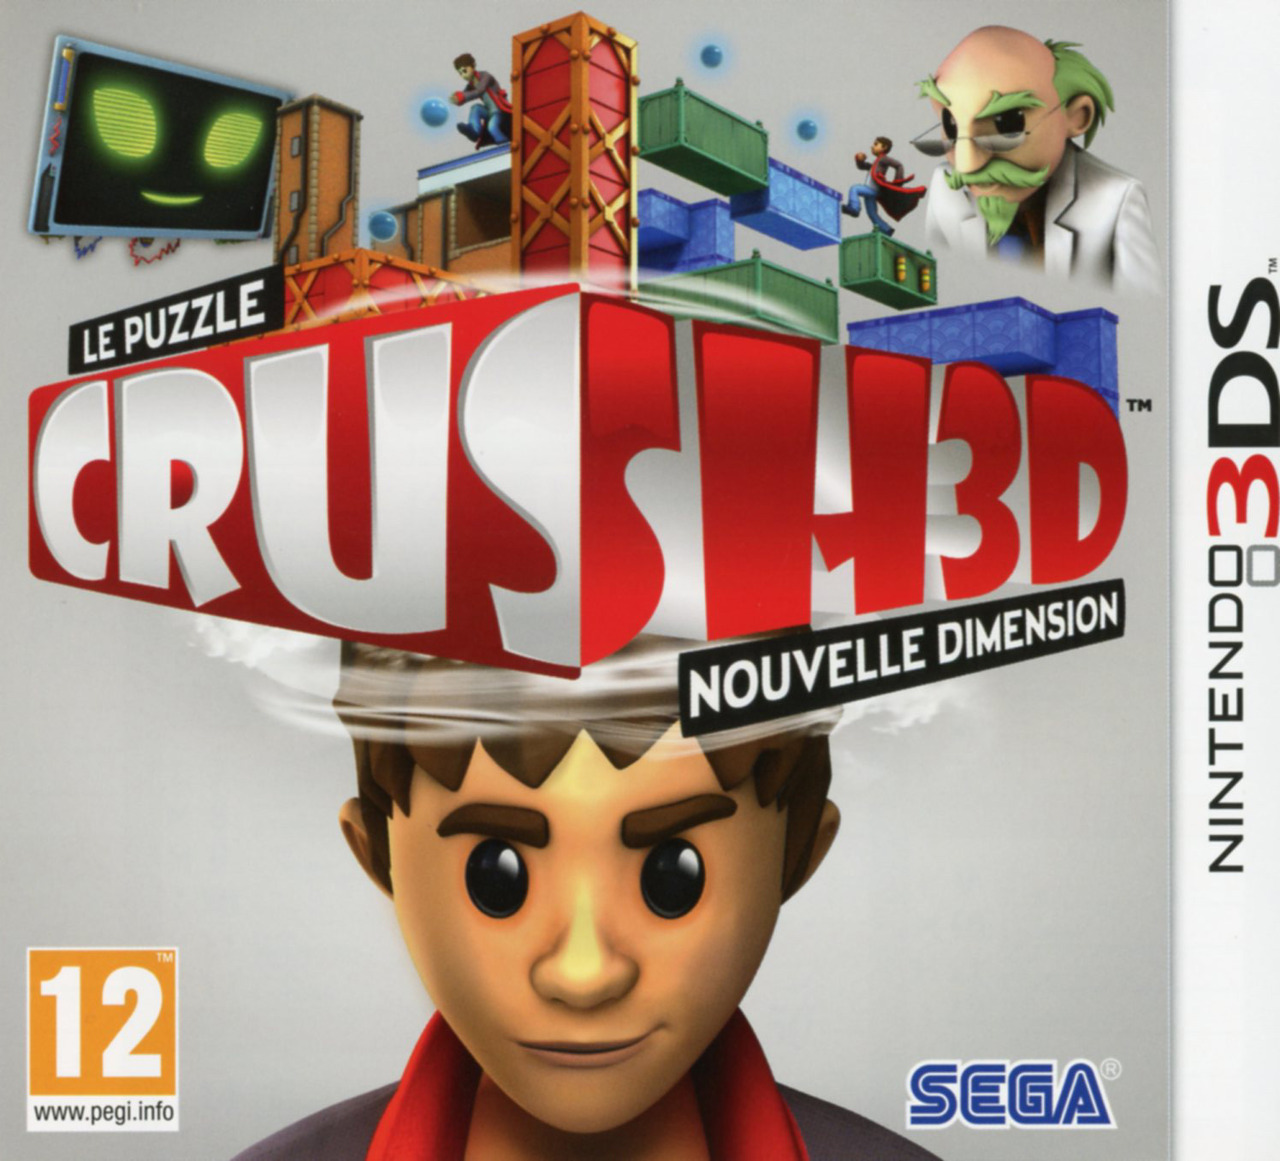 Crush3D [FRENCH | Nintendo 3DS | EUR] | Multi Liens